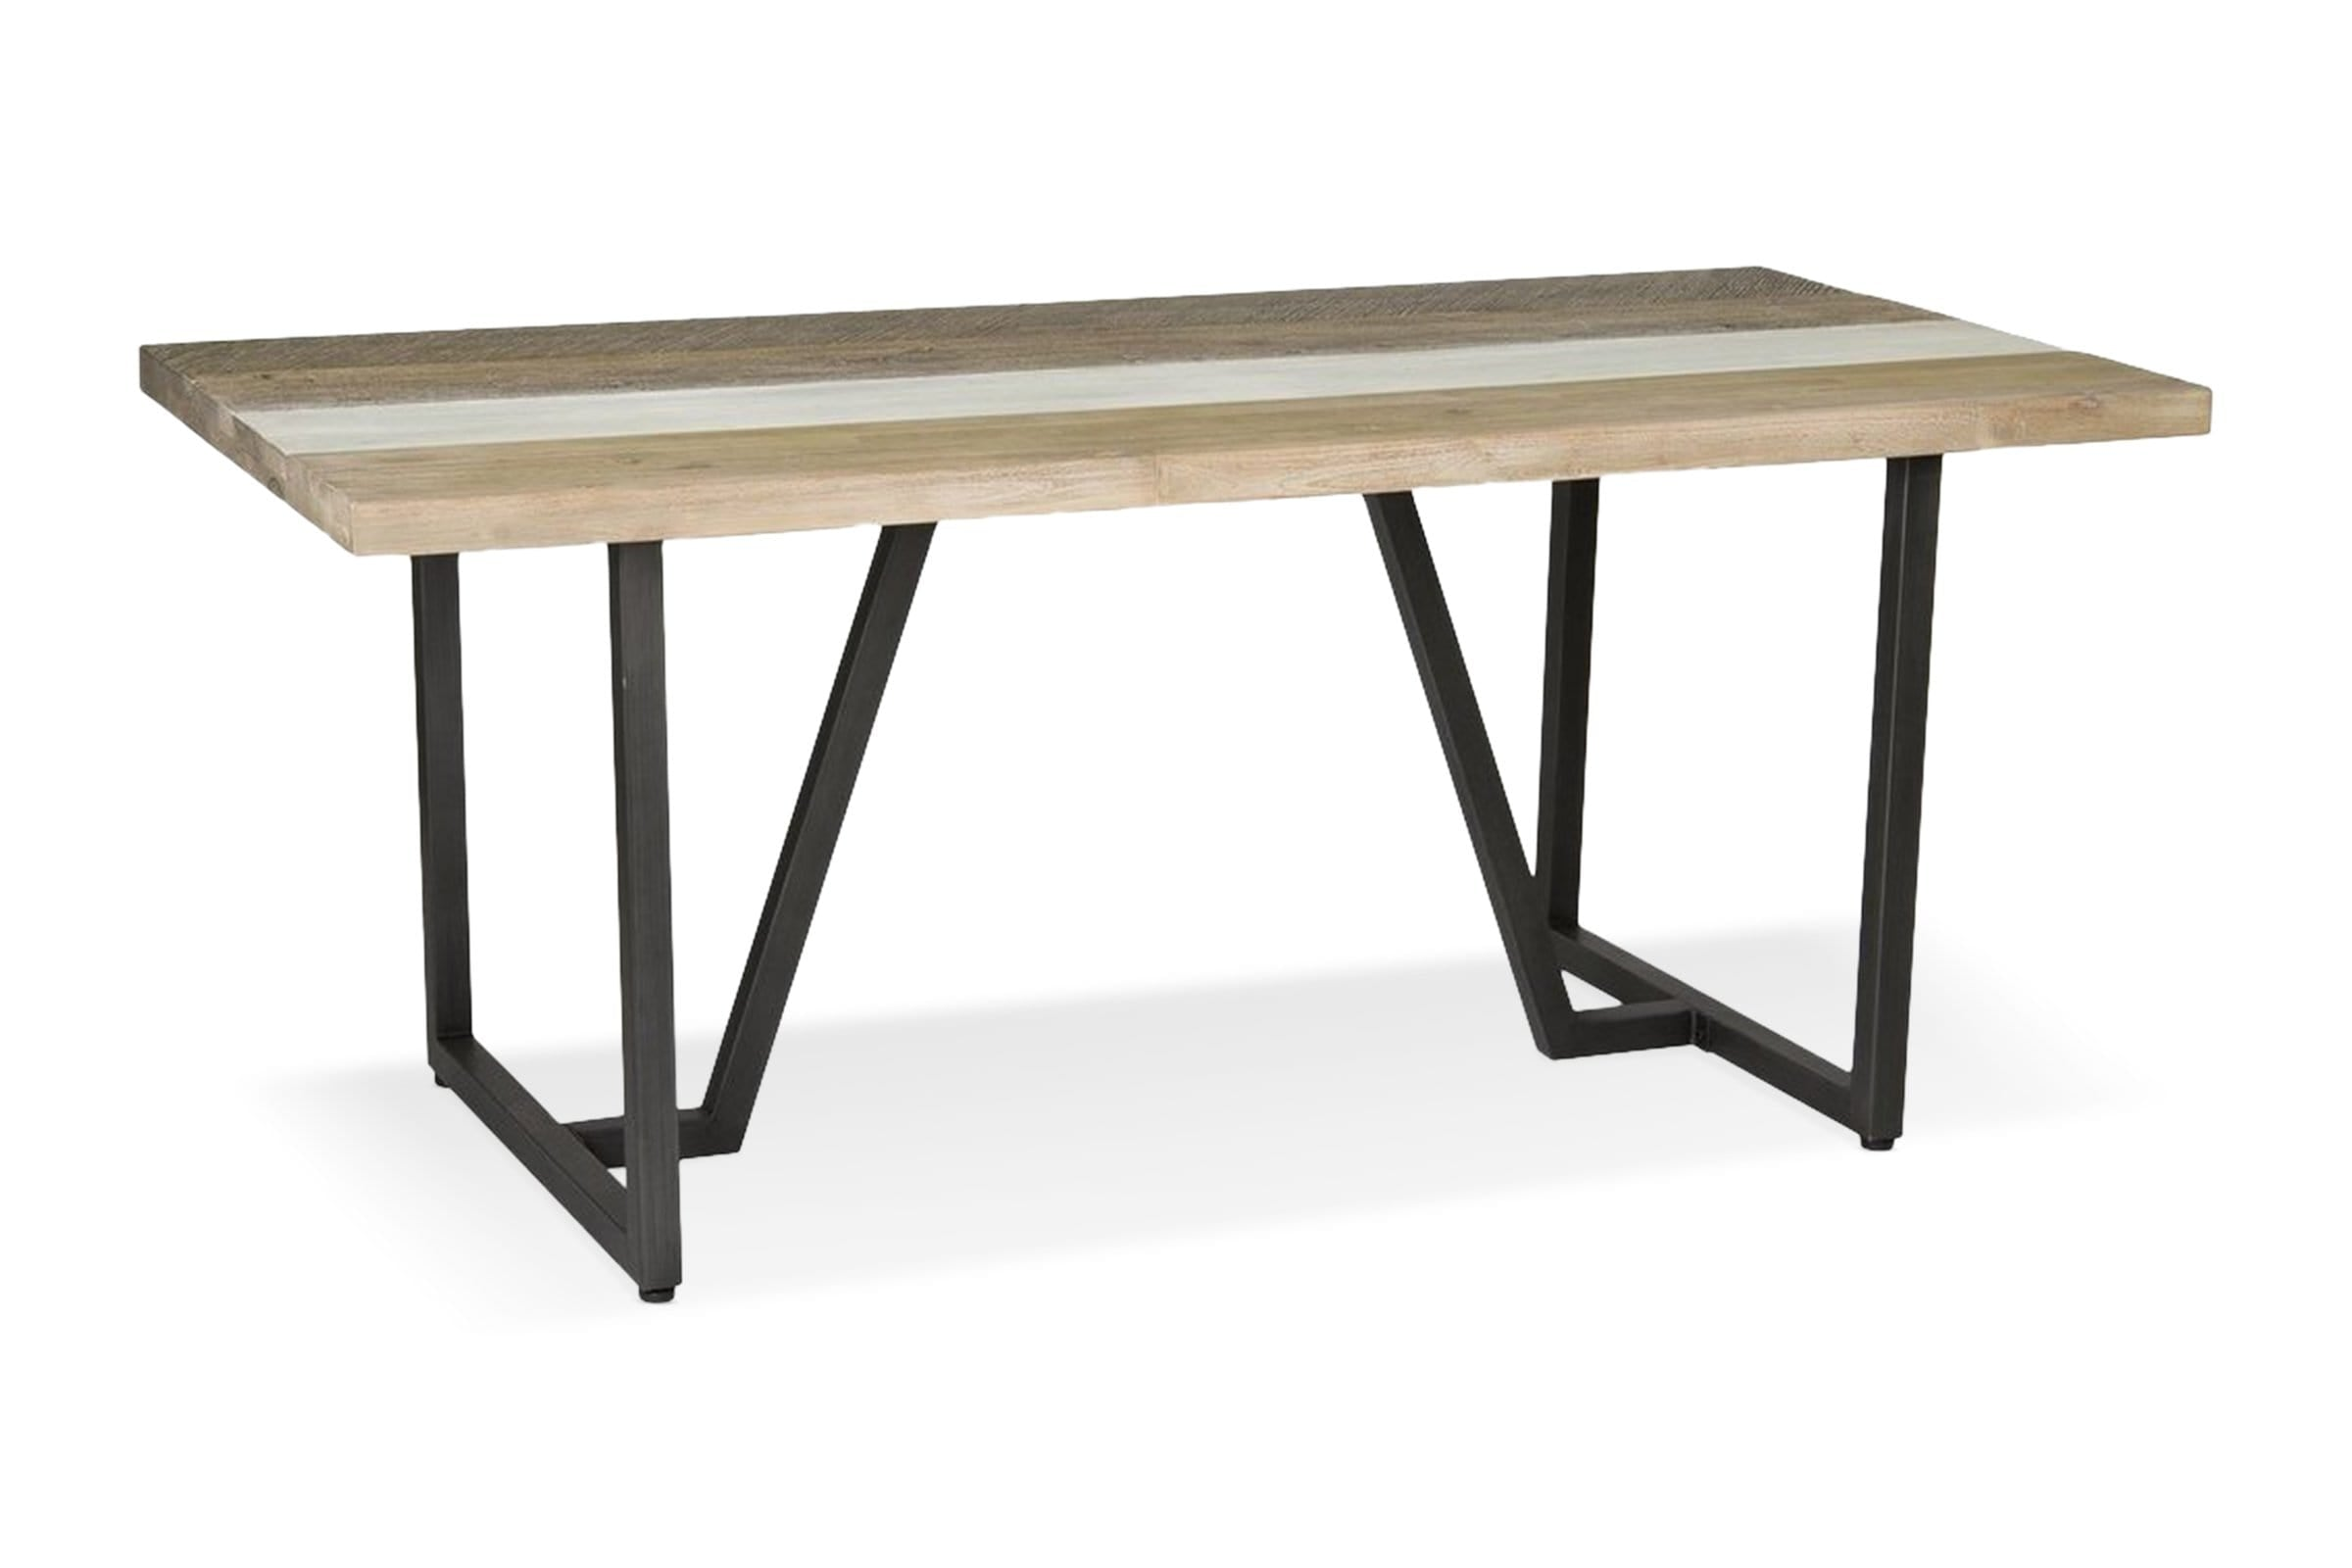 Bandit Ave Dining Table - Modern Dining Tables Sold by Apt2B